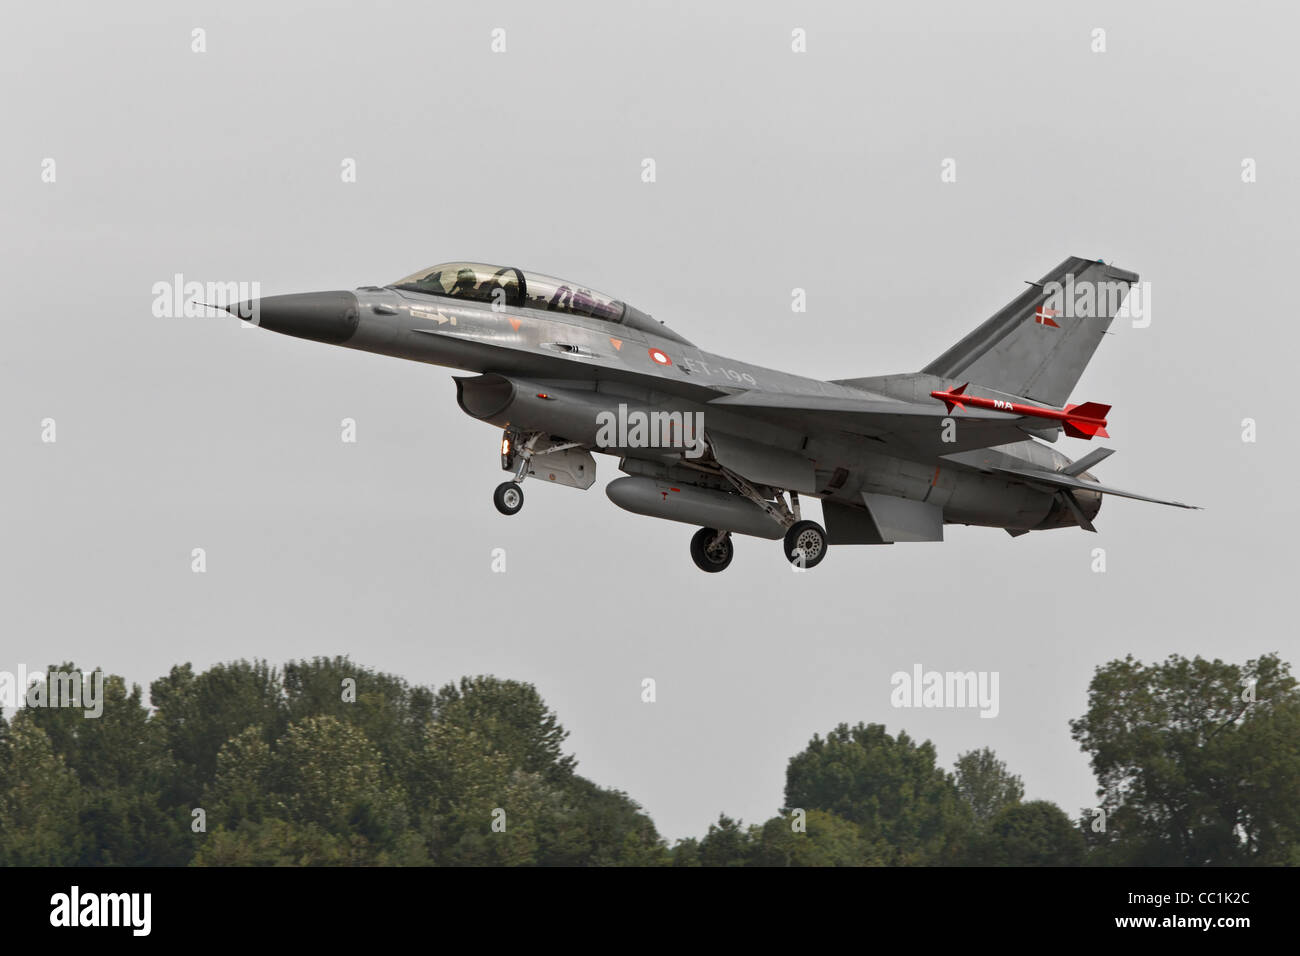 General Dynamics F16 Fighting Falcon - Stock Image